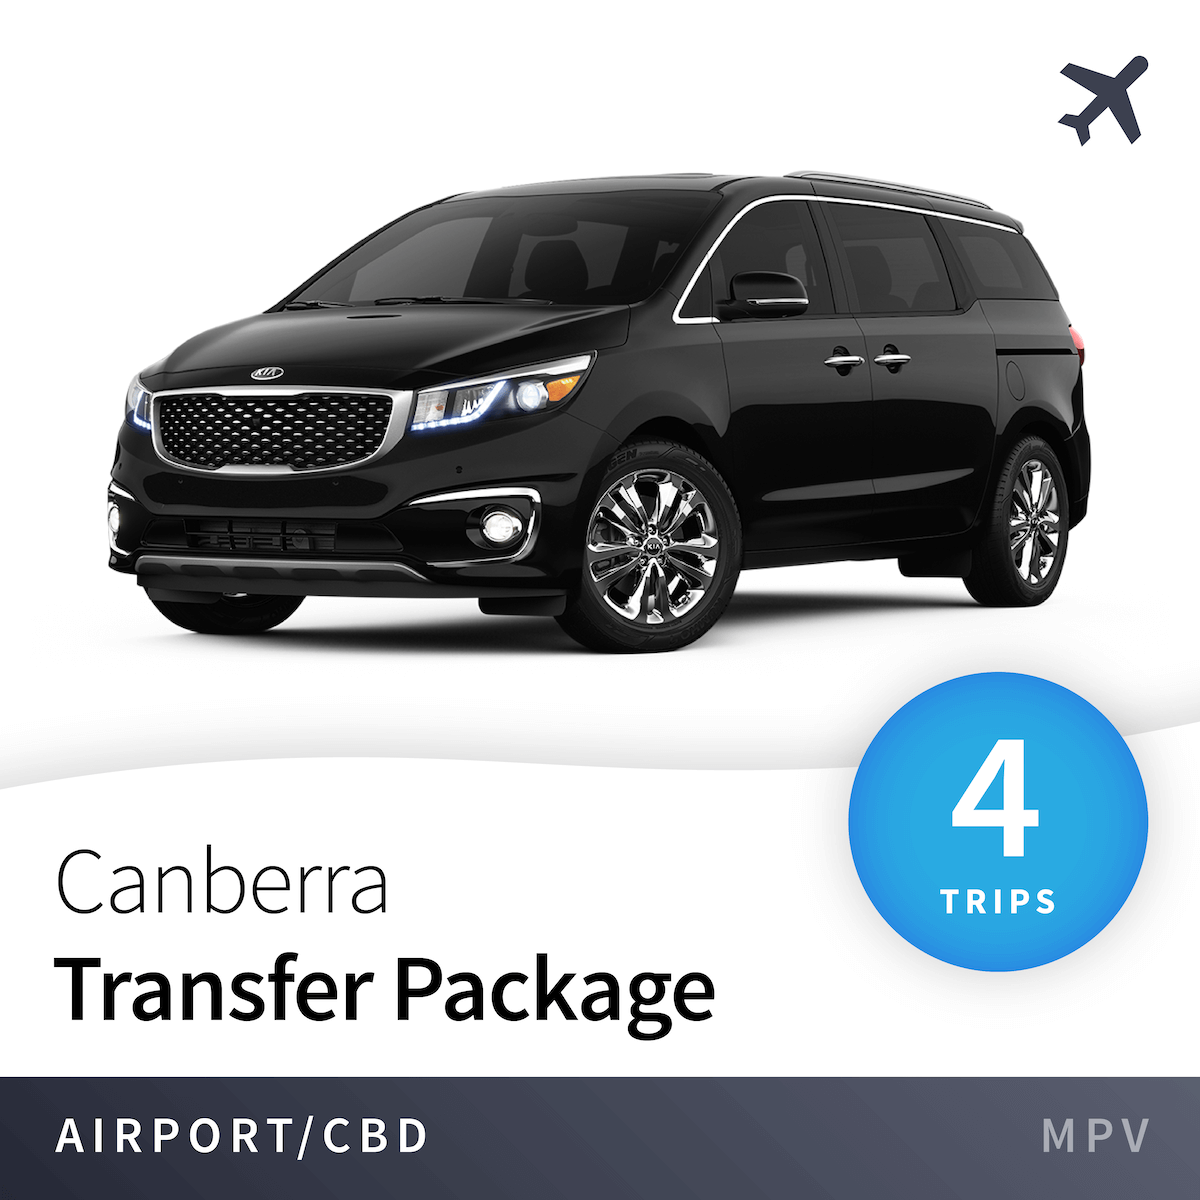 Canberra Airport Transfer Package - MPV (4 Trips) 1